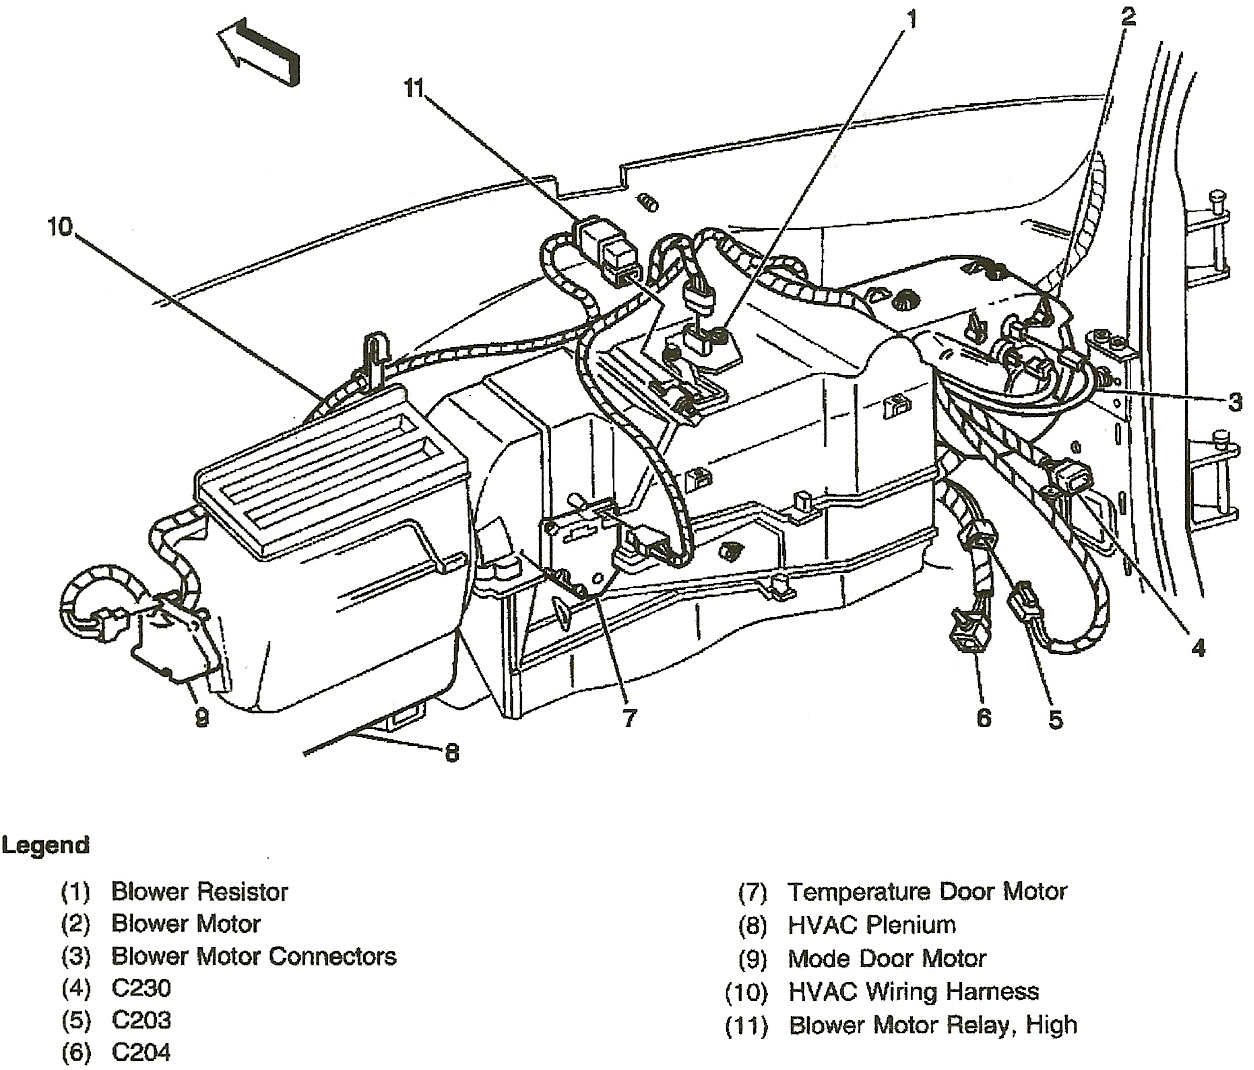 hight resolution of 2004 suburban ac diagram wiring diagrams rh 22 shareplm de 1999 ford explorer ac diagram 1999 ford explorer ac diagram